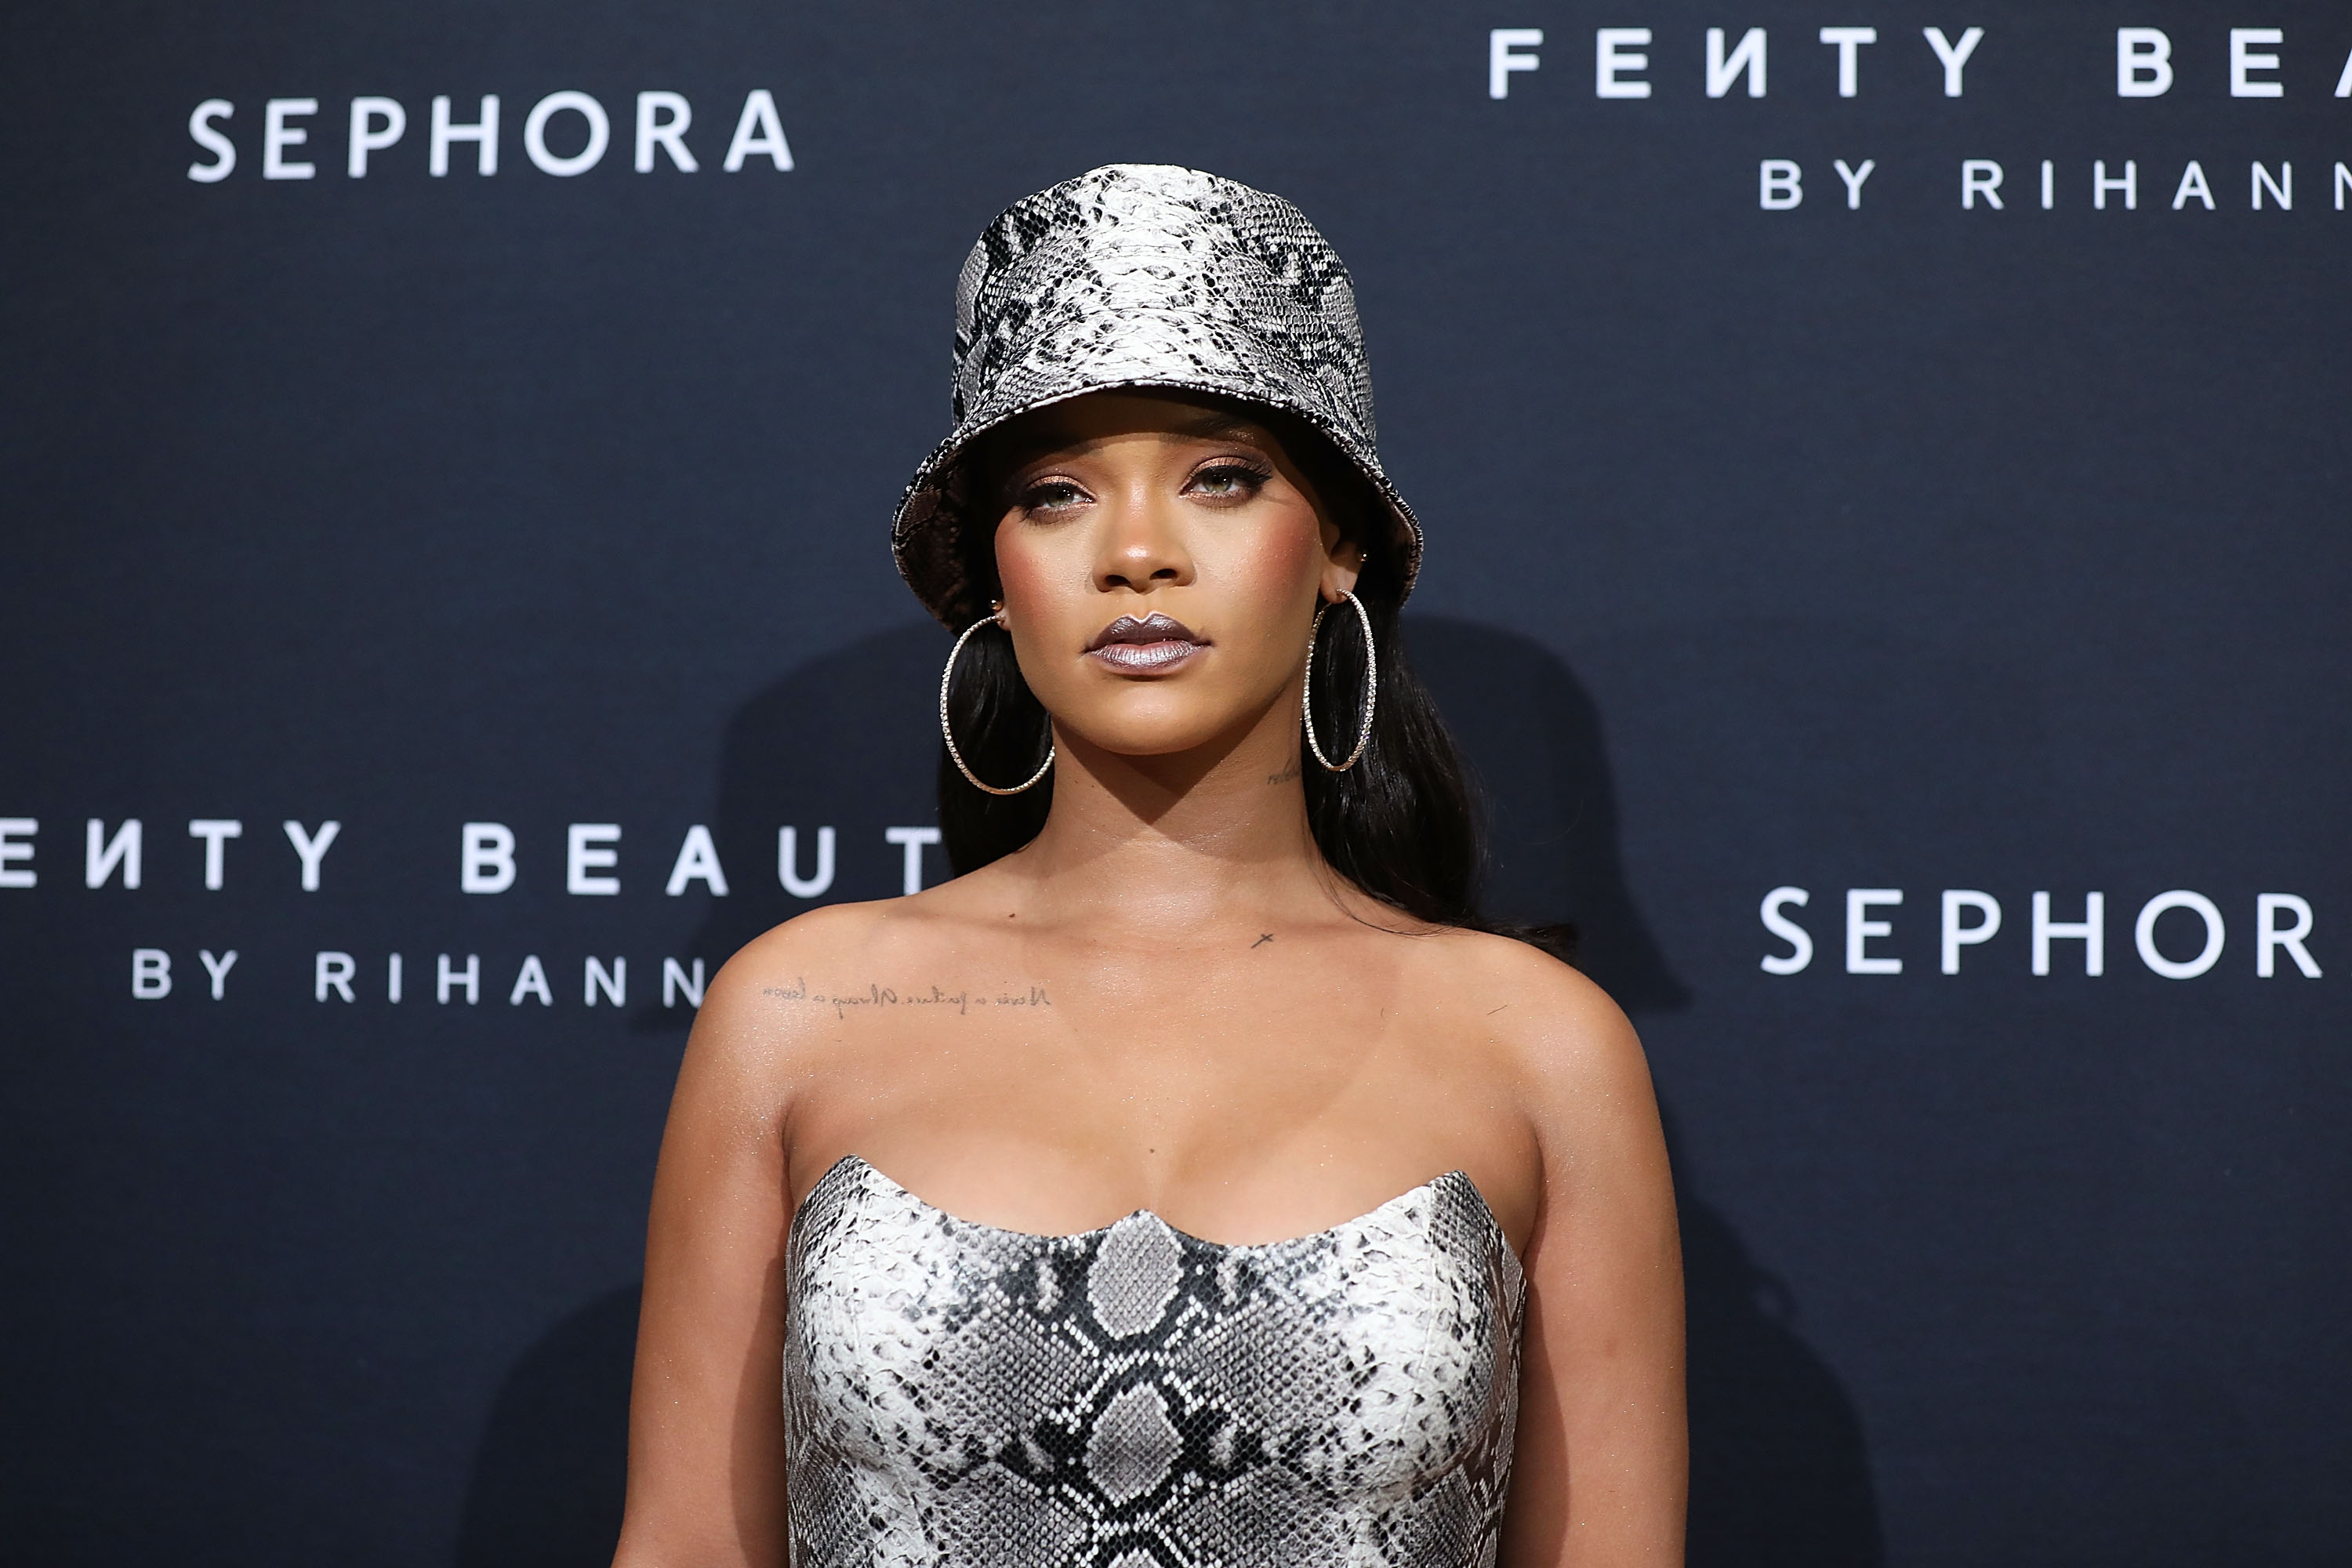 Rihanna's New Project Is A Reggae Album